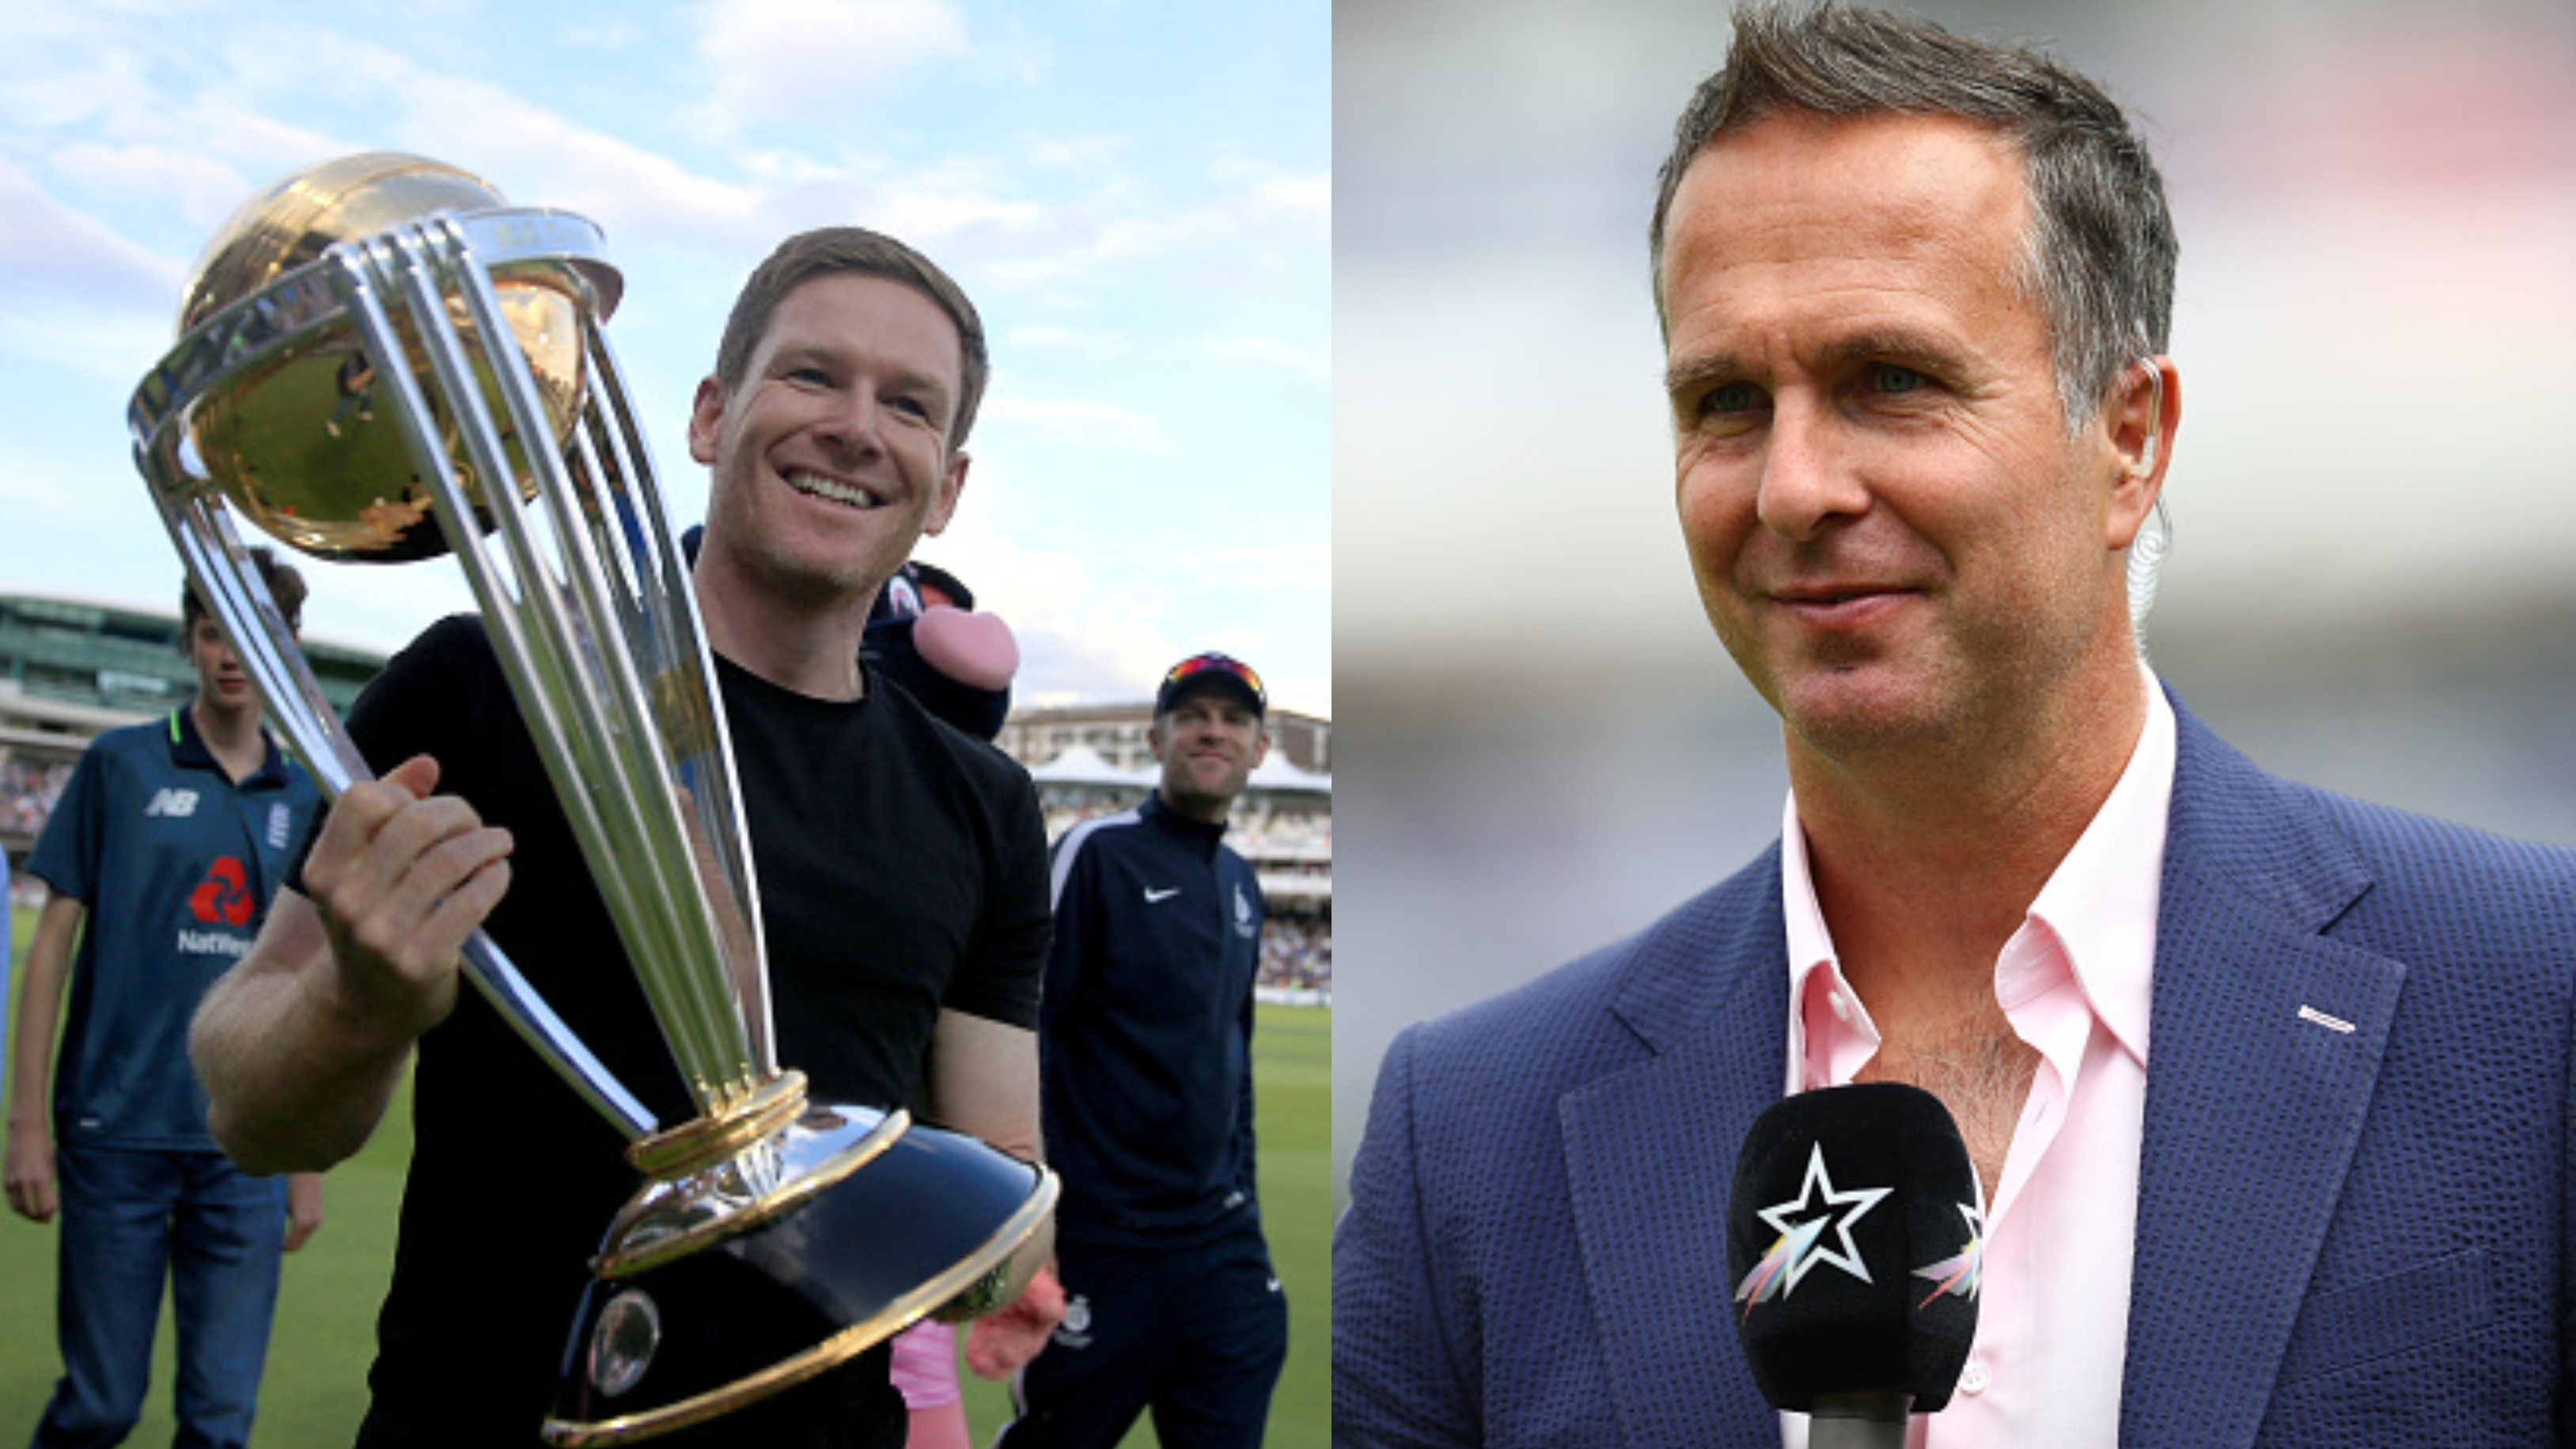 Michael Vaughan backs England to lift the ICC World Cup in 2047